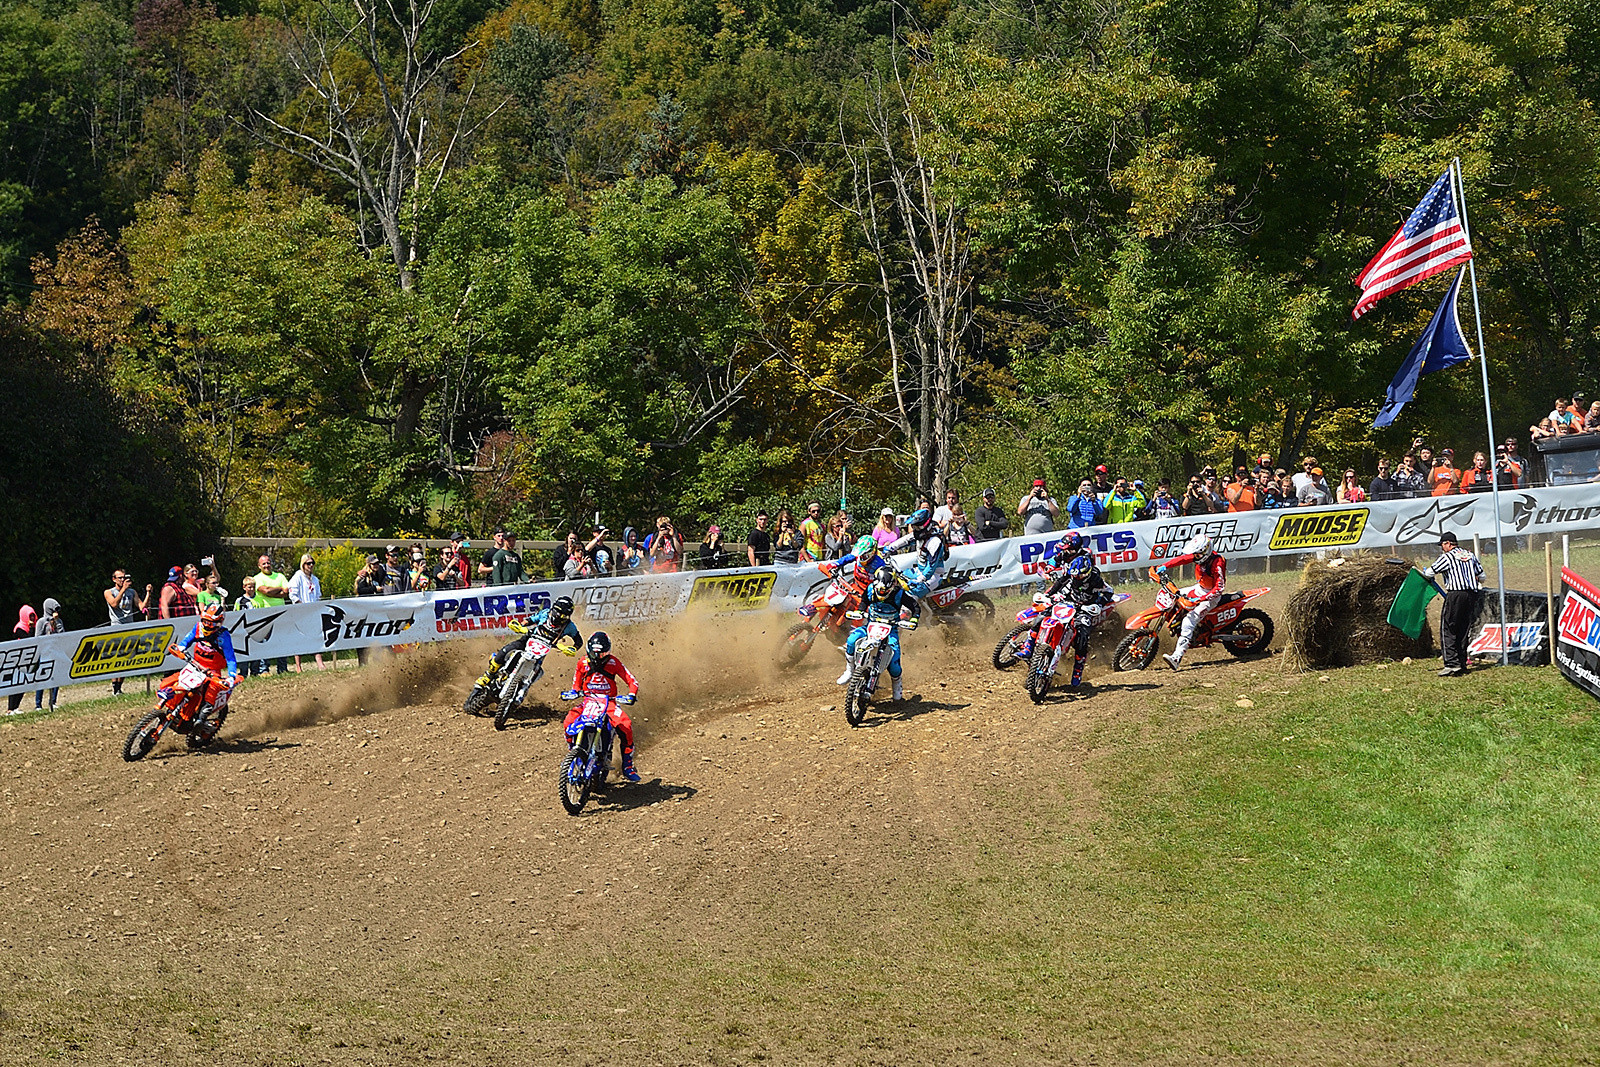 Ricky Russell pulled the holeshot in the XC1 Pro class, and set the pace for the first part of the race.